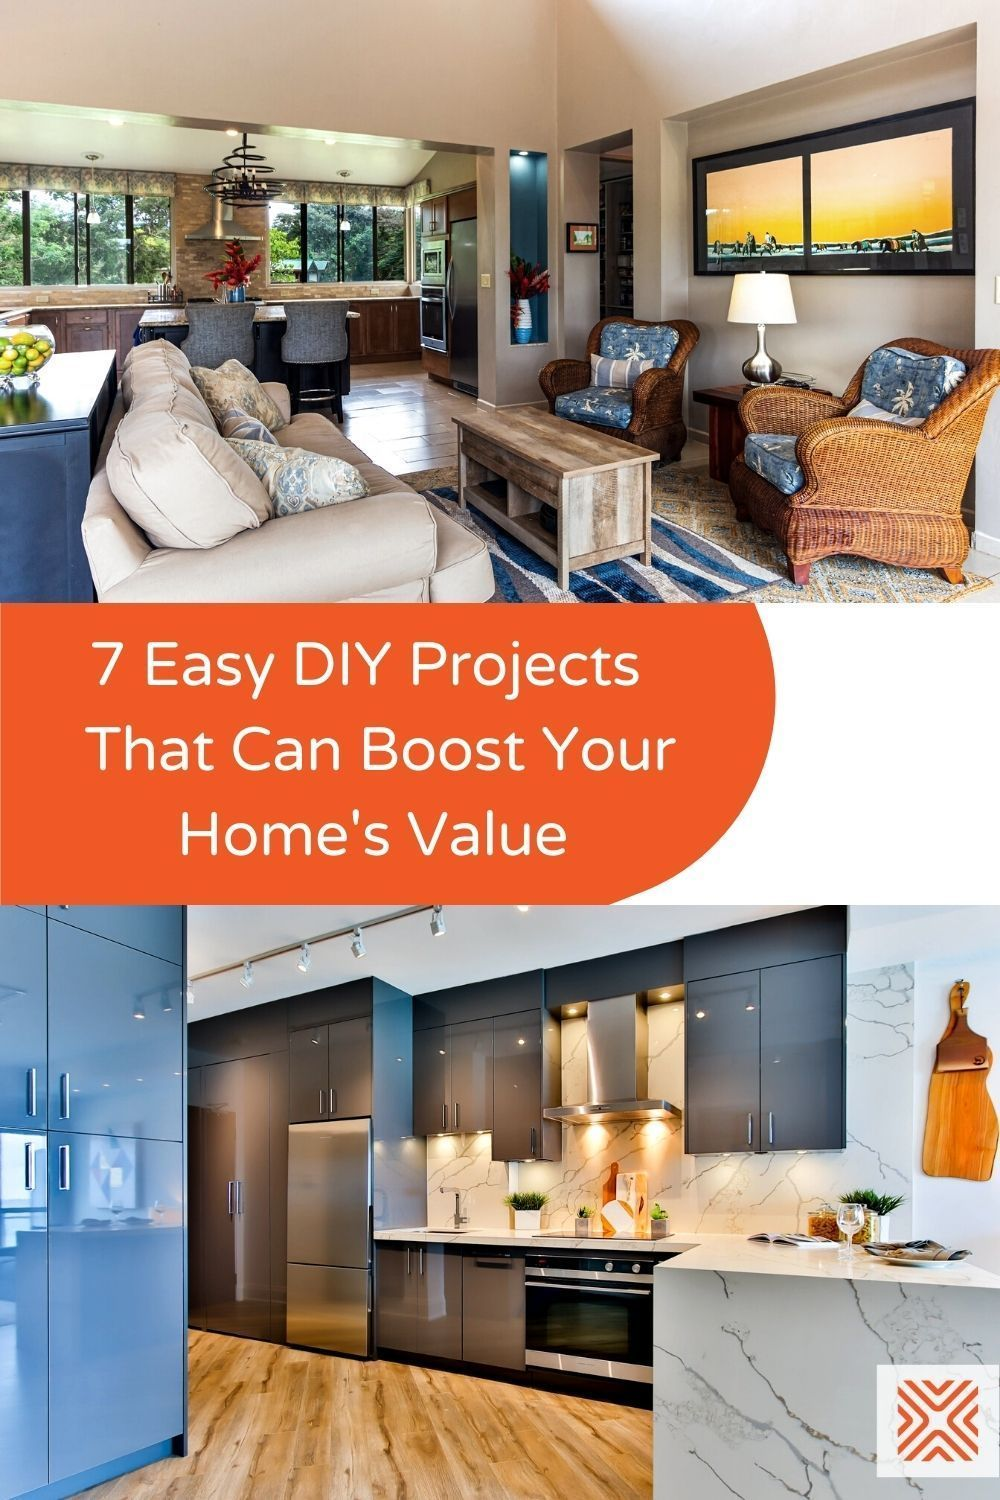 These small, budget-friendly home renovation projects can help you raise your home value by a lot more effort than what you put into it! Check them out and get your DIY projects started.